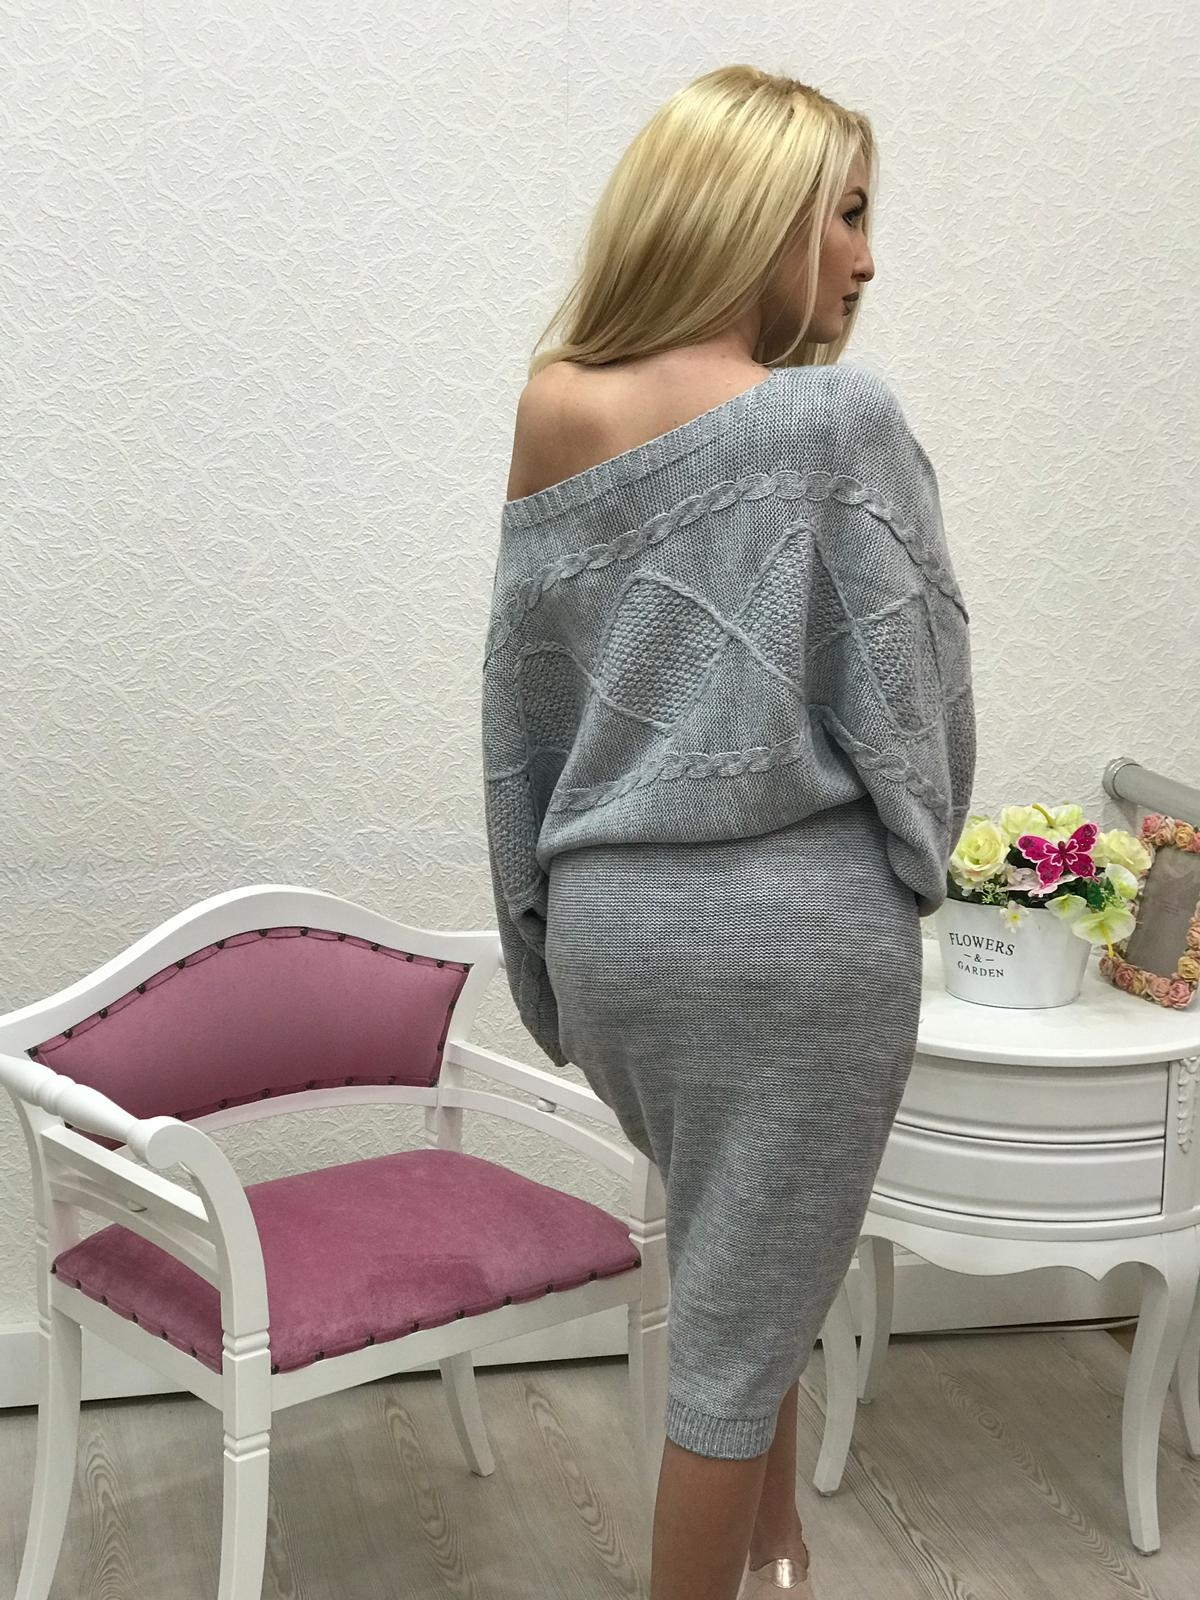 COMPLEU DIN TRICOT BY FASHIMO COD : 2629